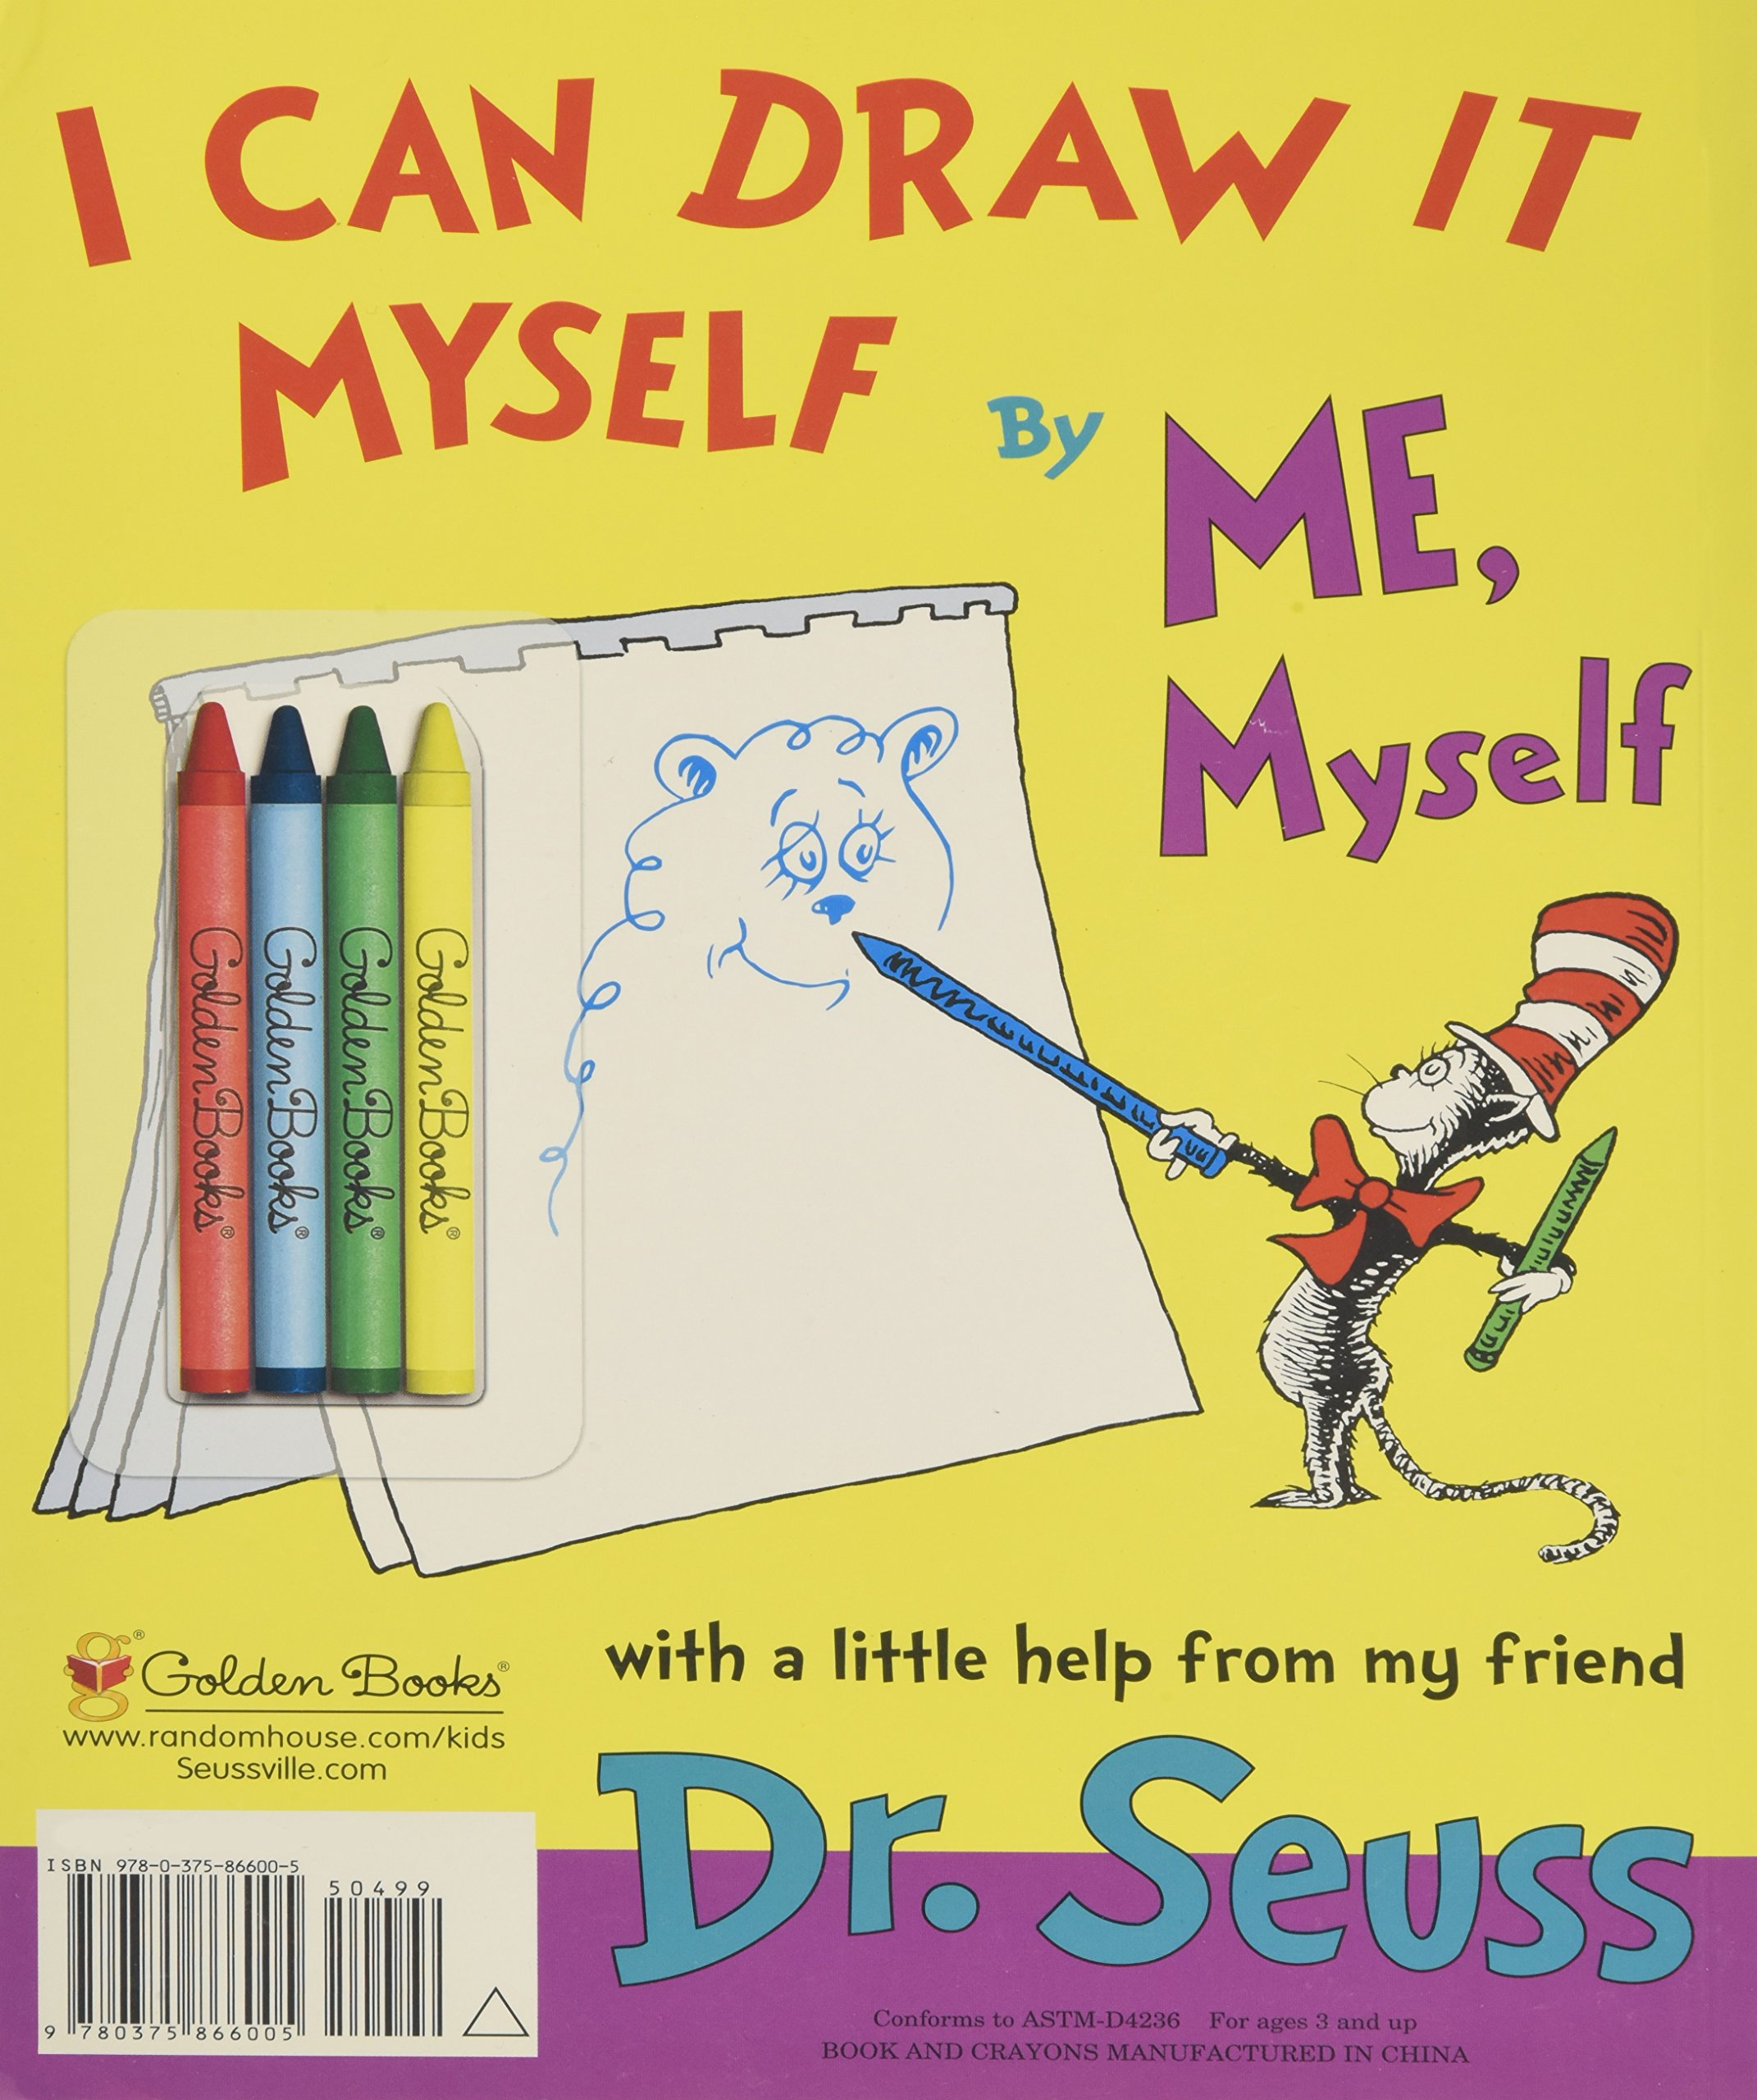 I Can Draw It Myself, By Me, Myself (Classic Seuss) by Golden Books (Image #2)